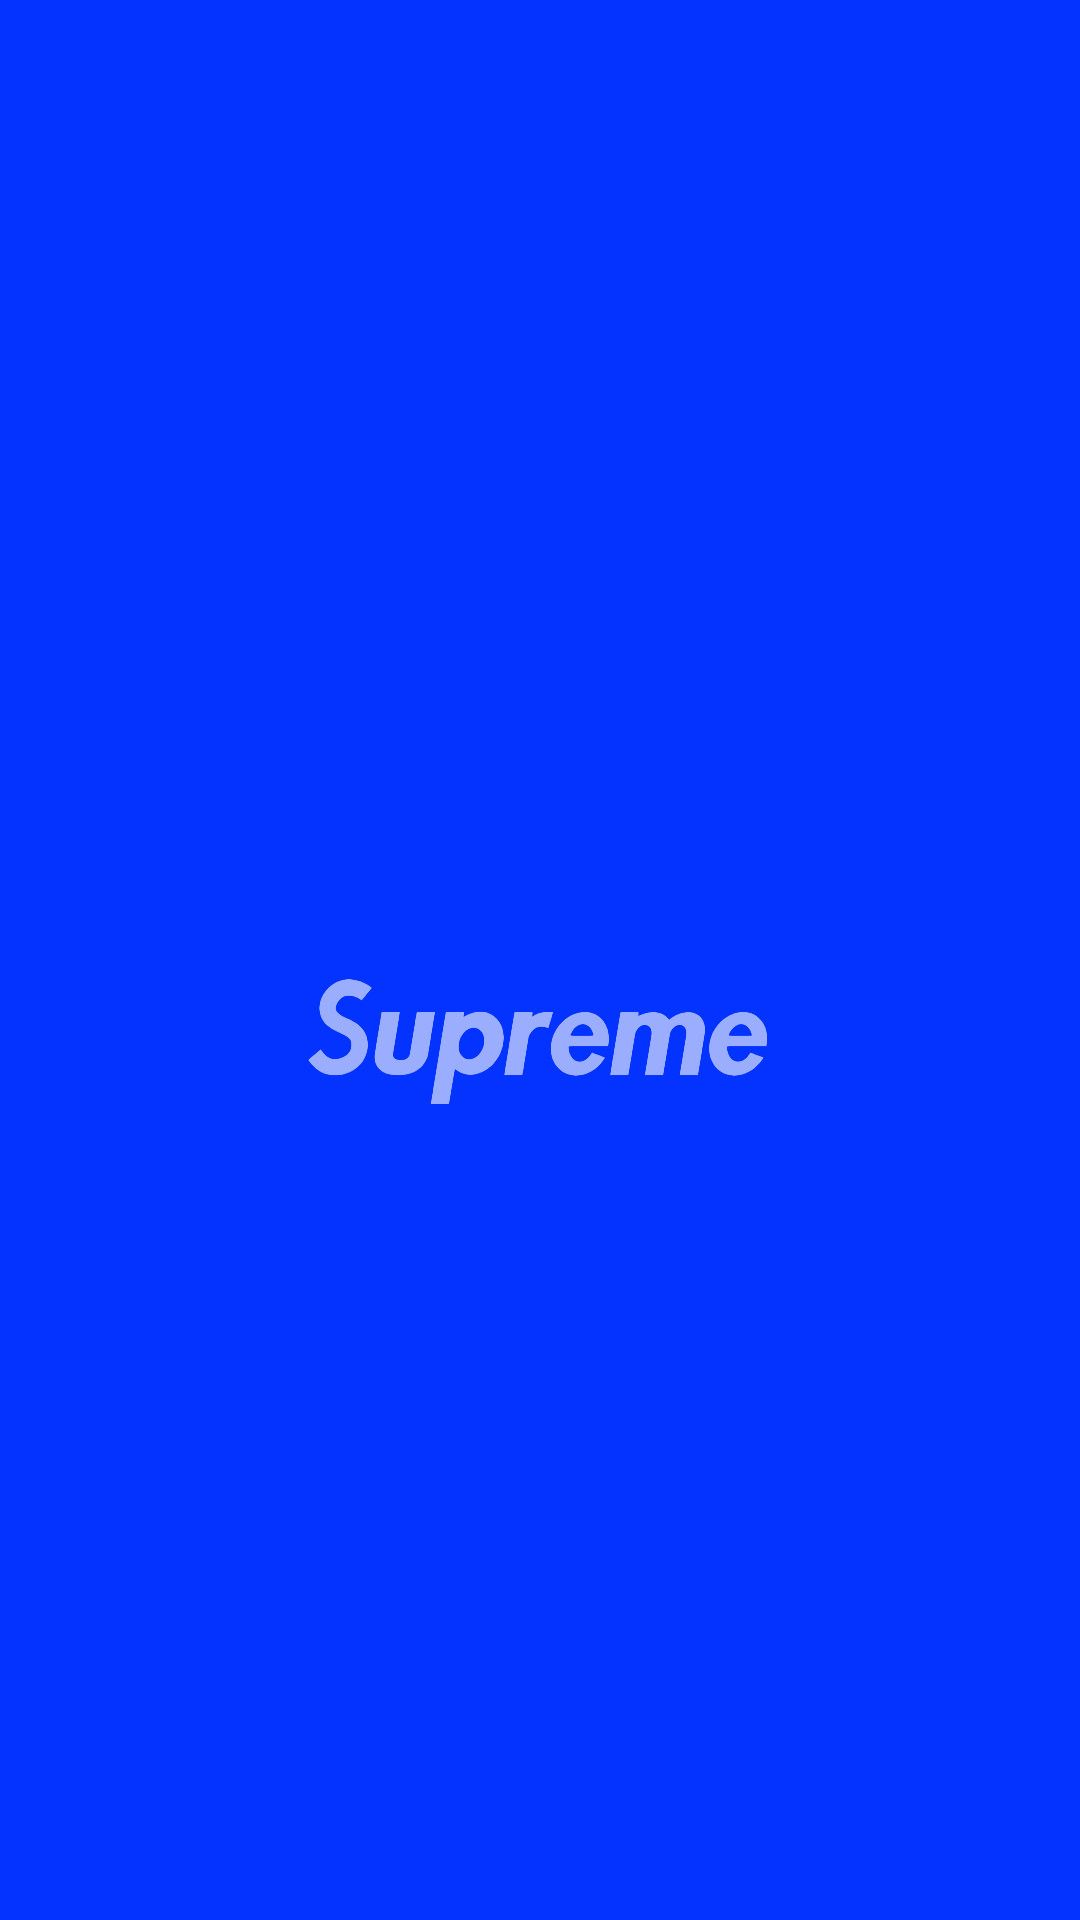 Blue Supreme Wallpapers Top Free Blue Supreme Backgrounds